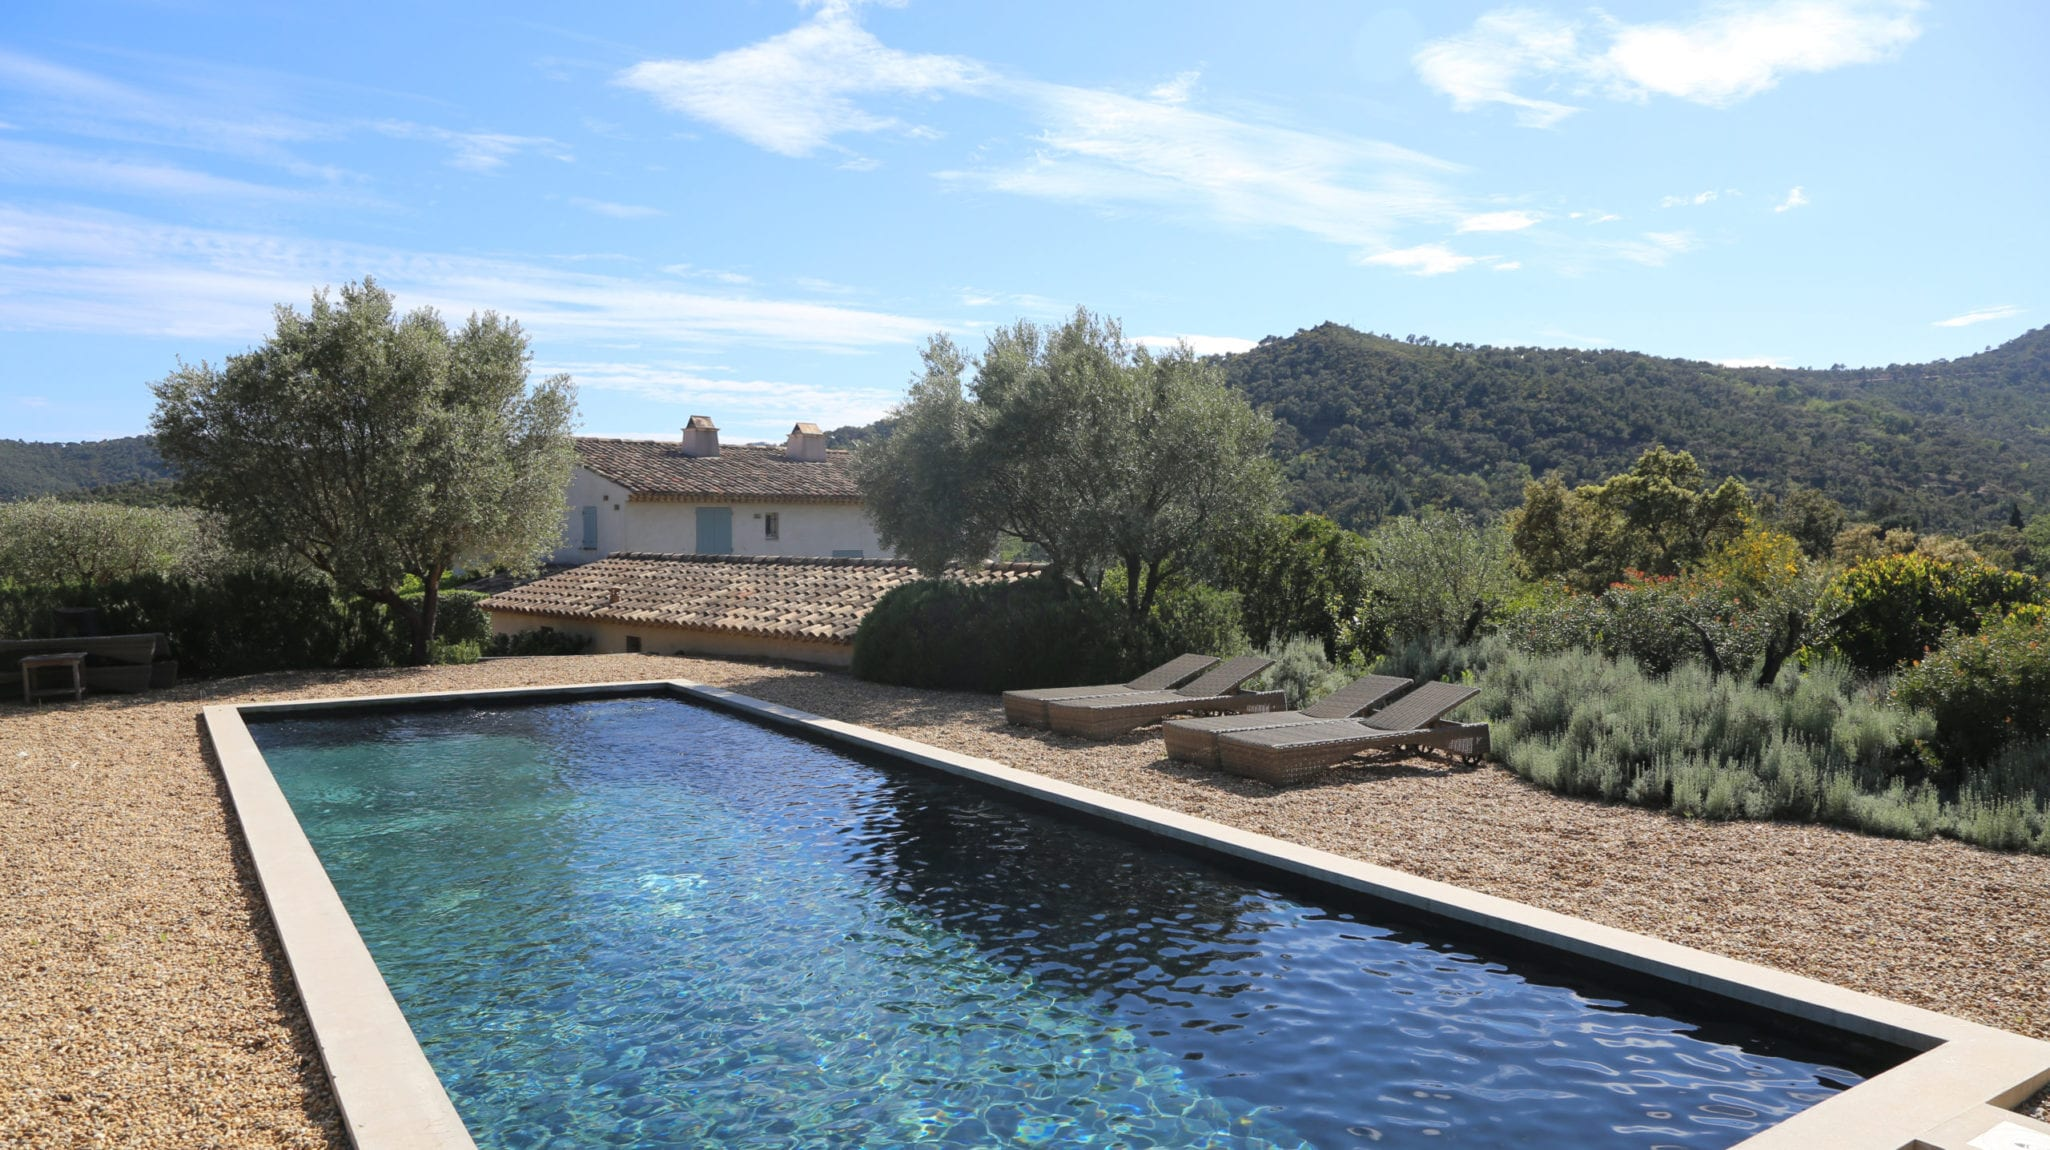 Outdoor swimming pool in Provence, South of France.